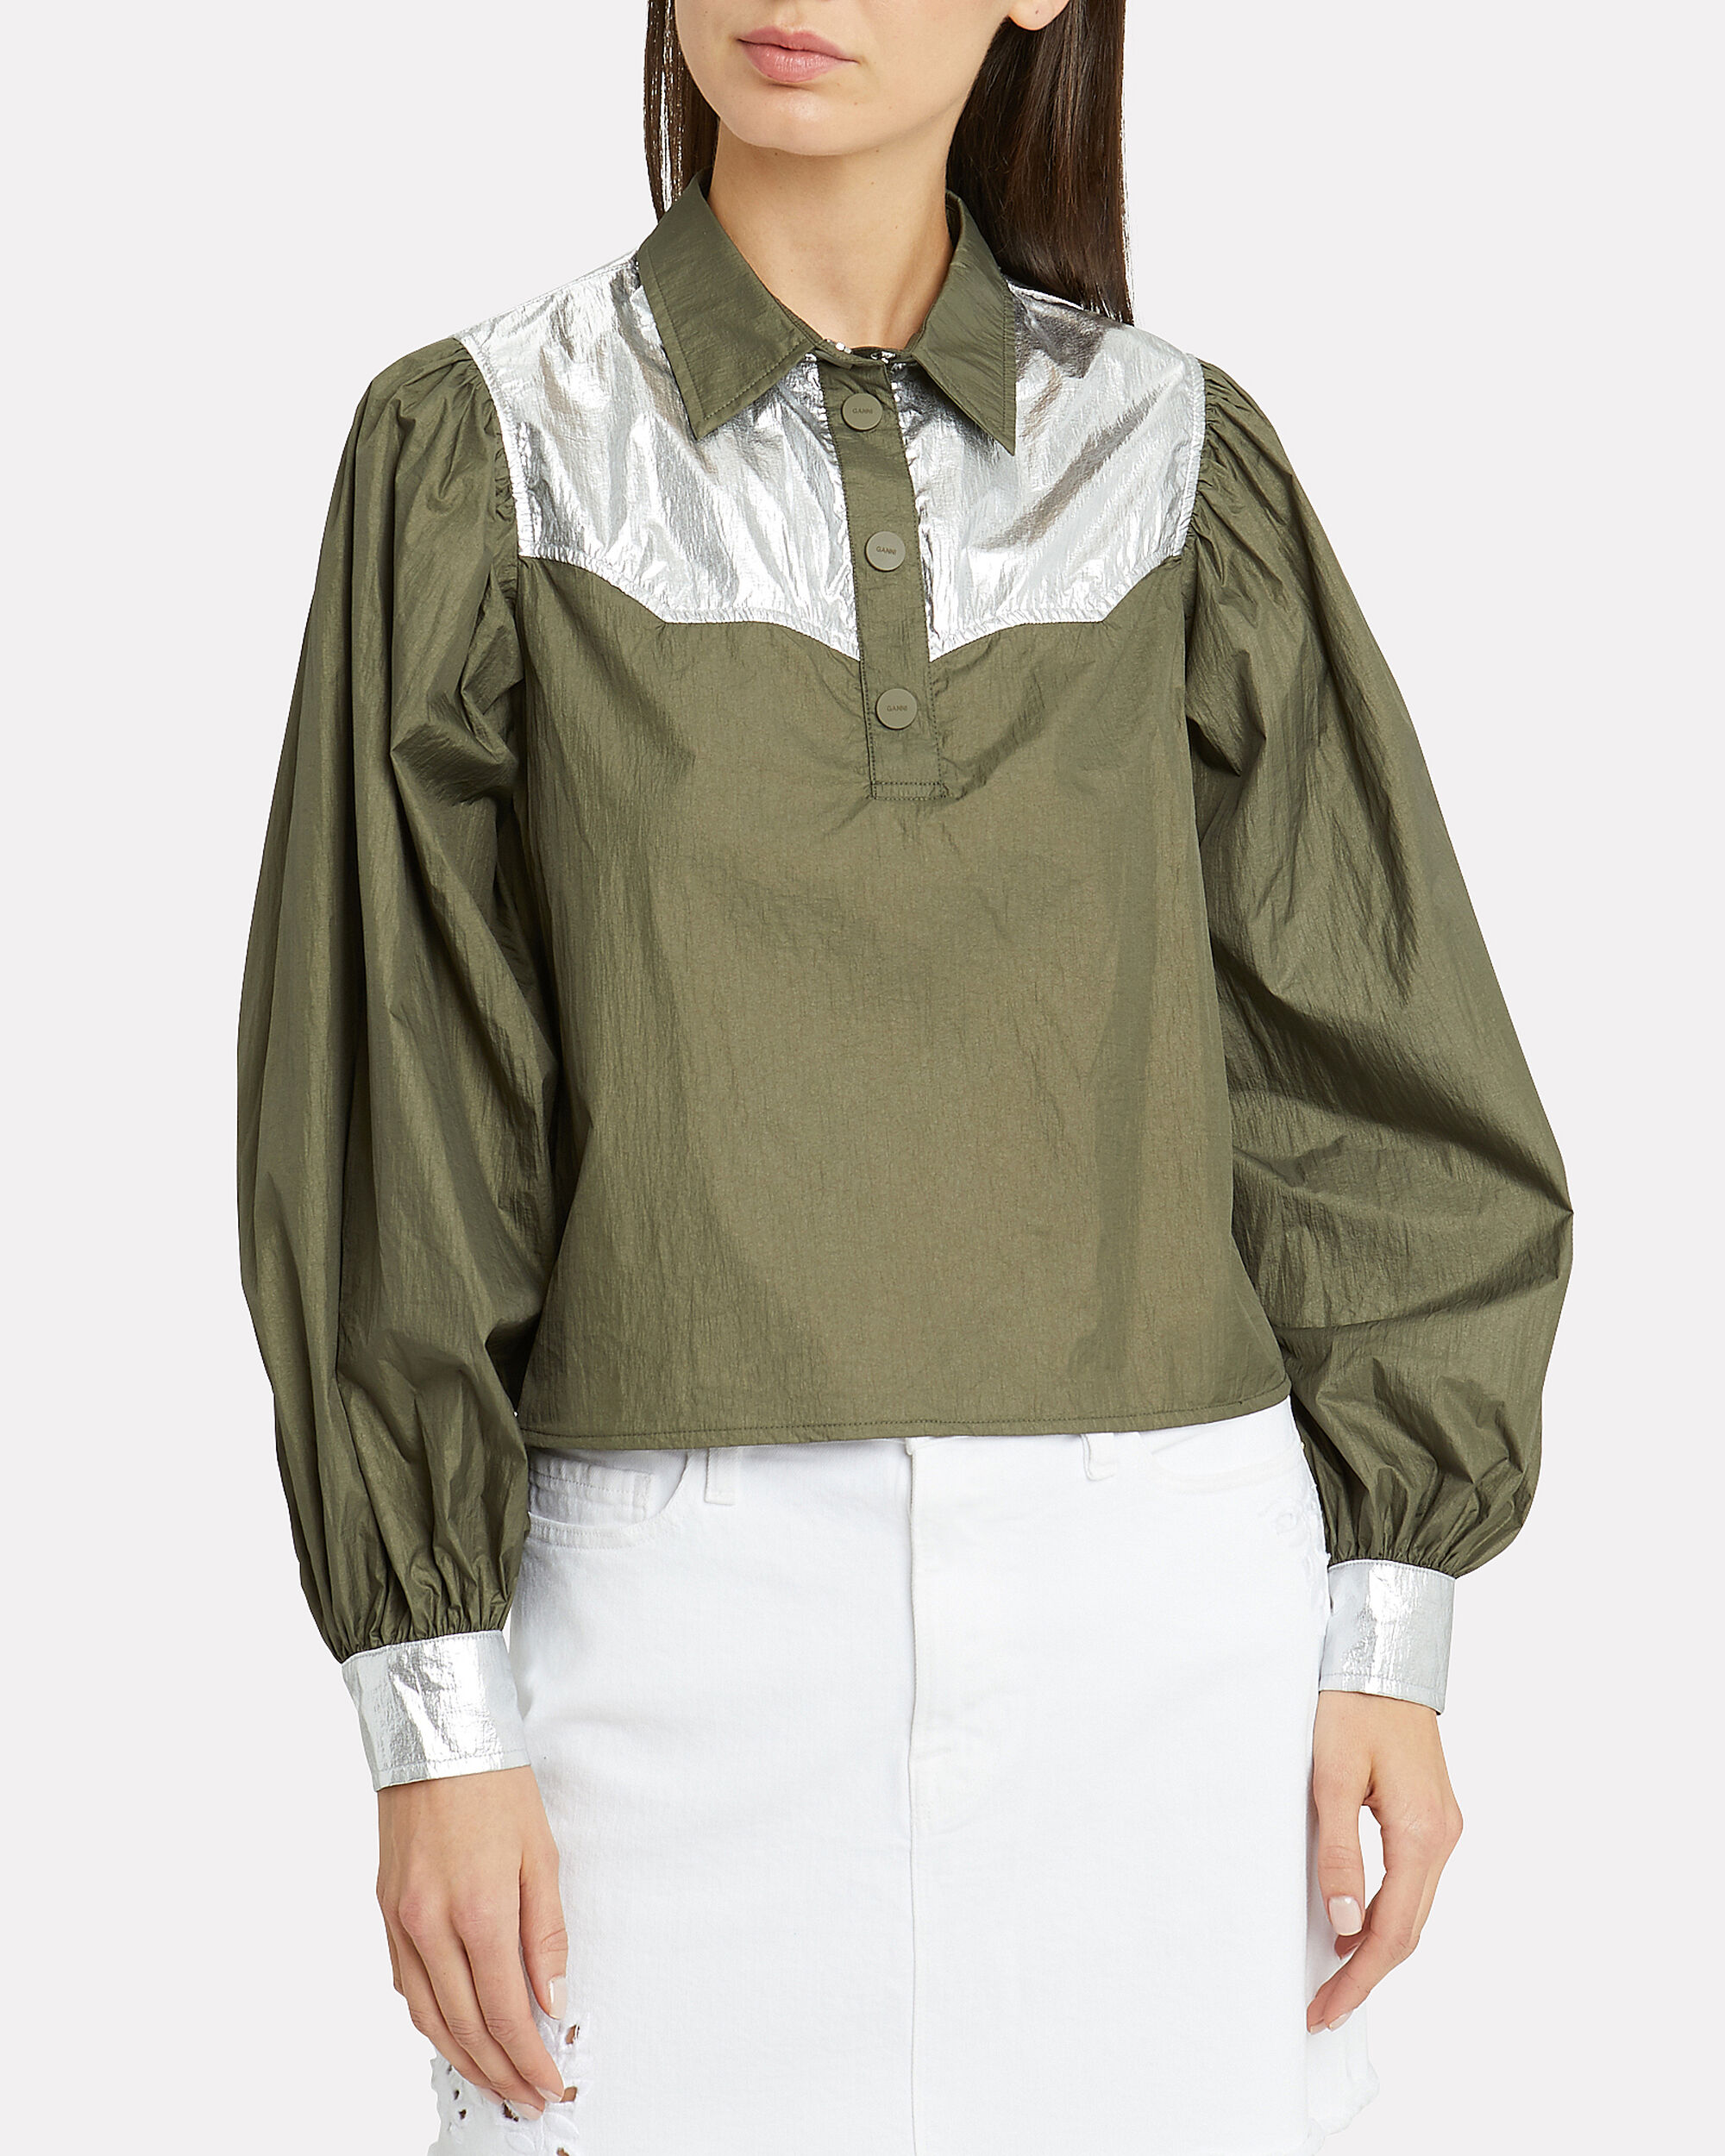 Mica Colorblocked Tech Top, OLIVE/SILVER, hi-res